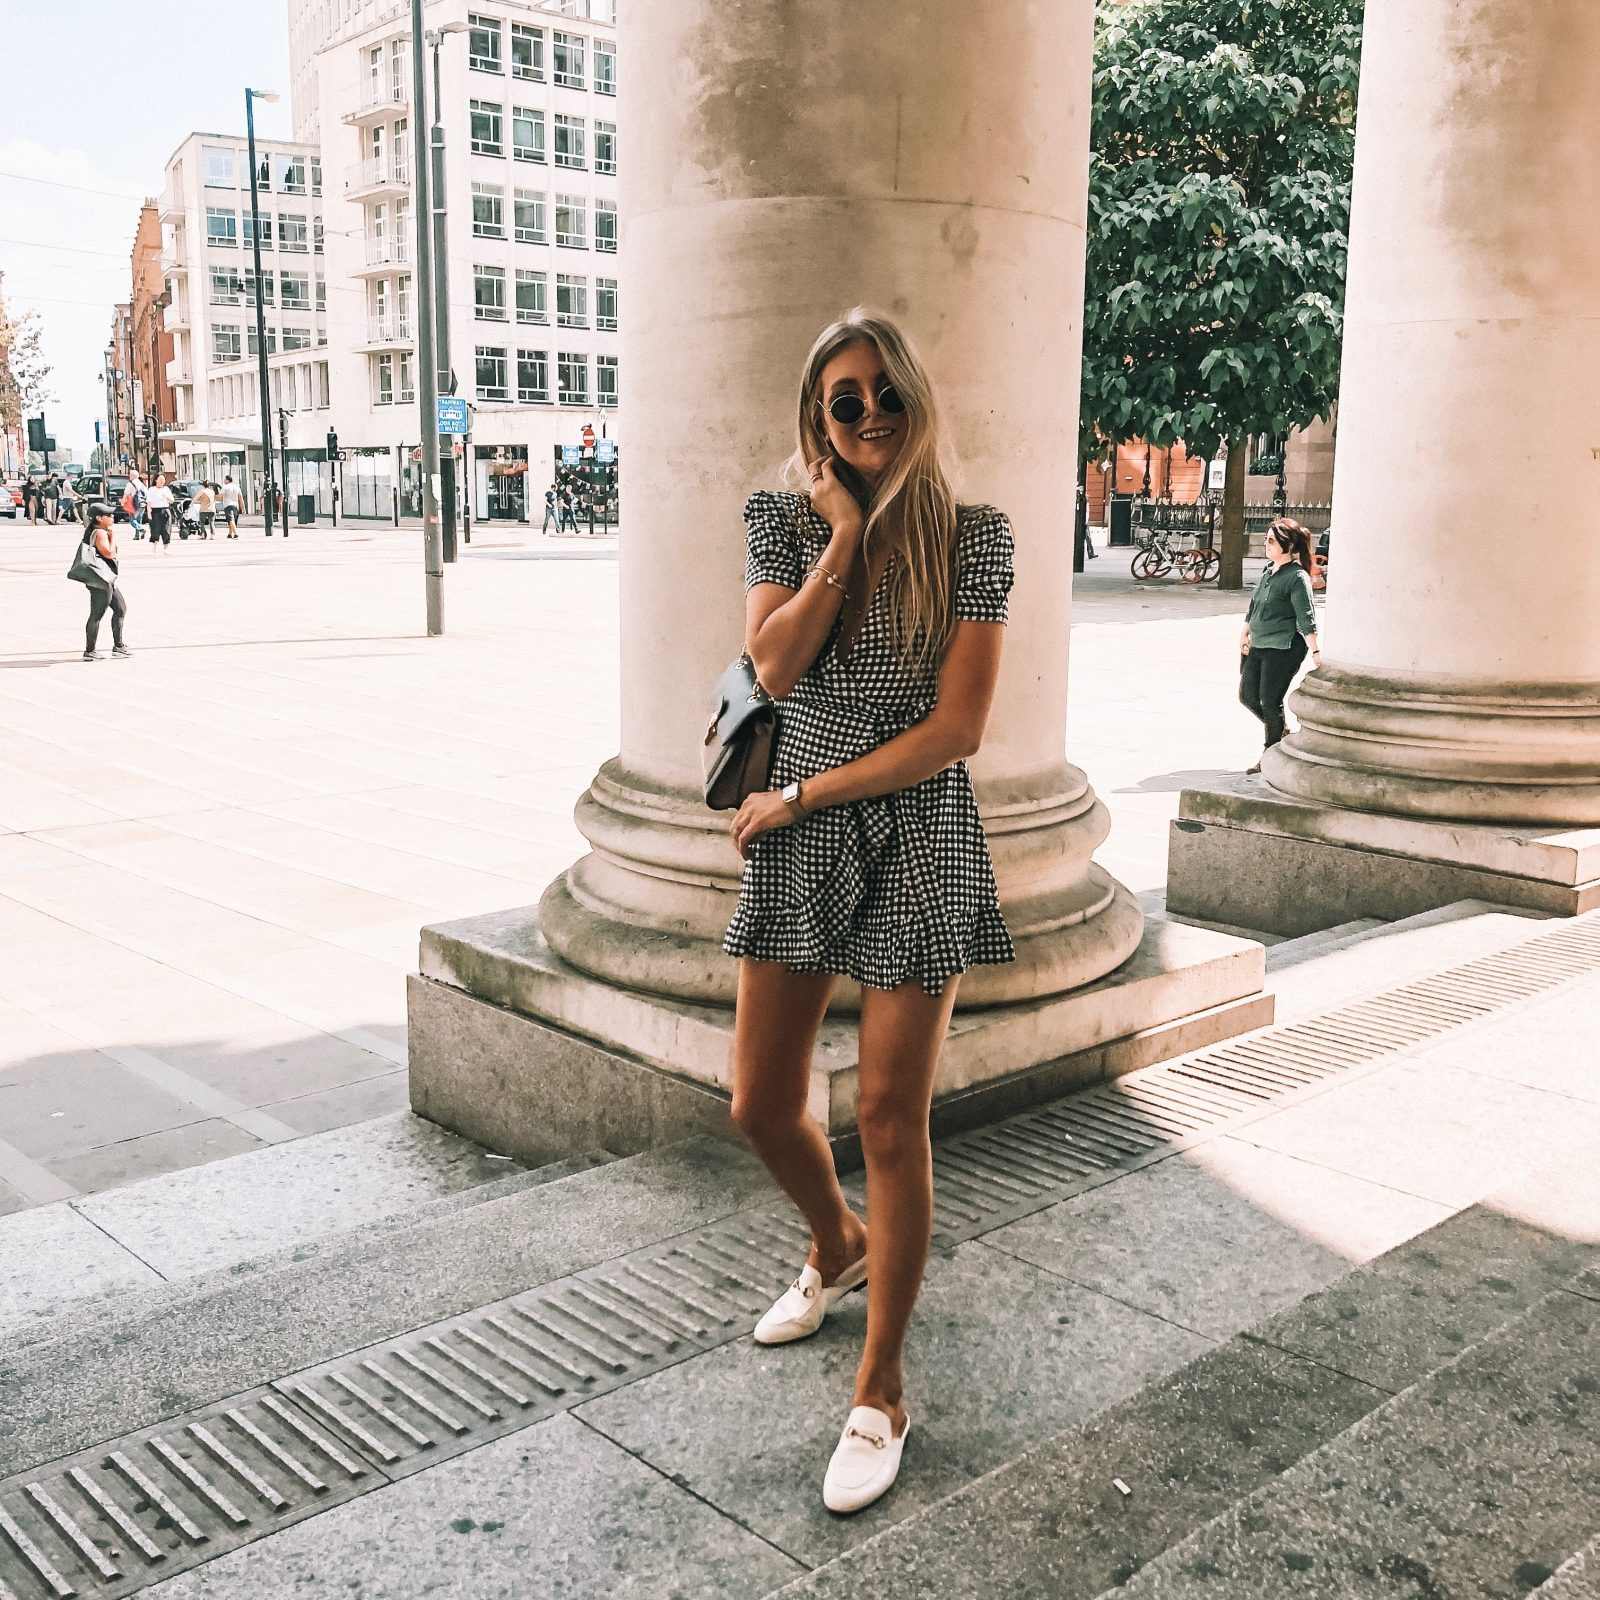 Revolve Summer Street Style - Fashion Blogger Sinead Crowe